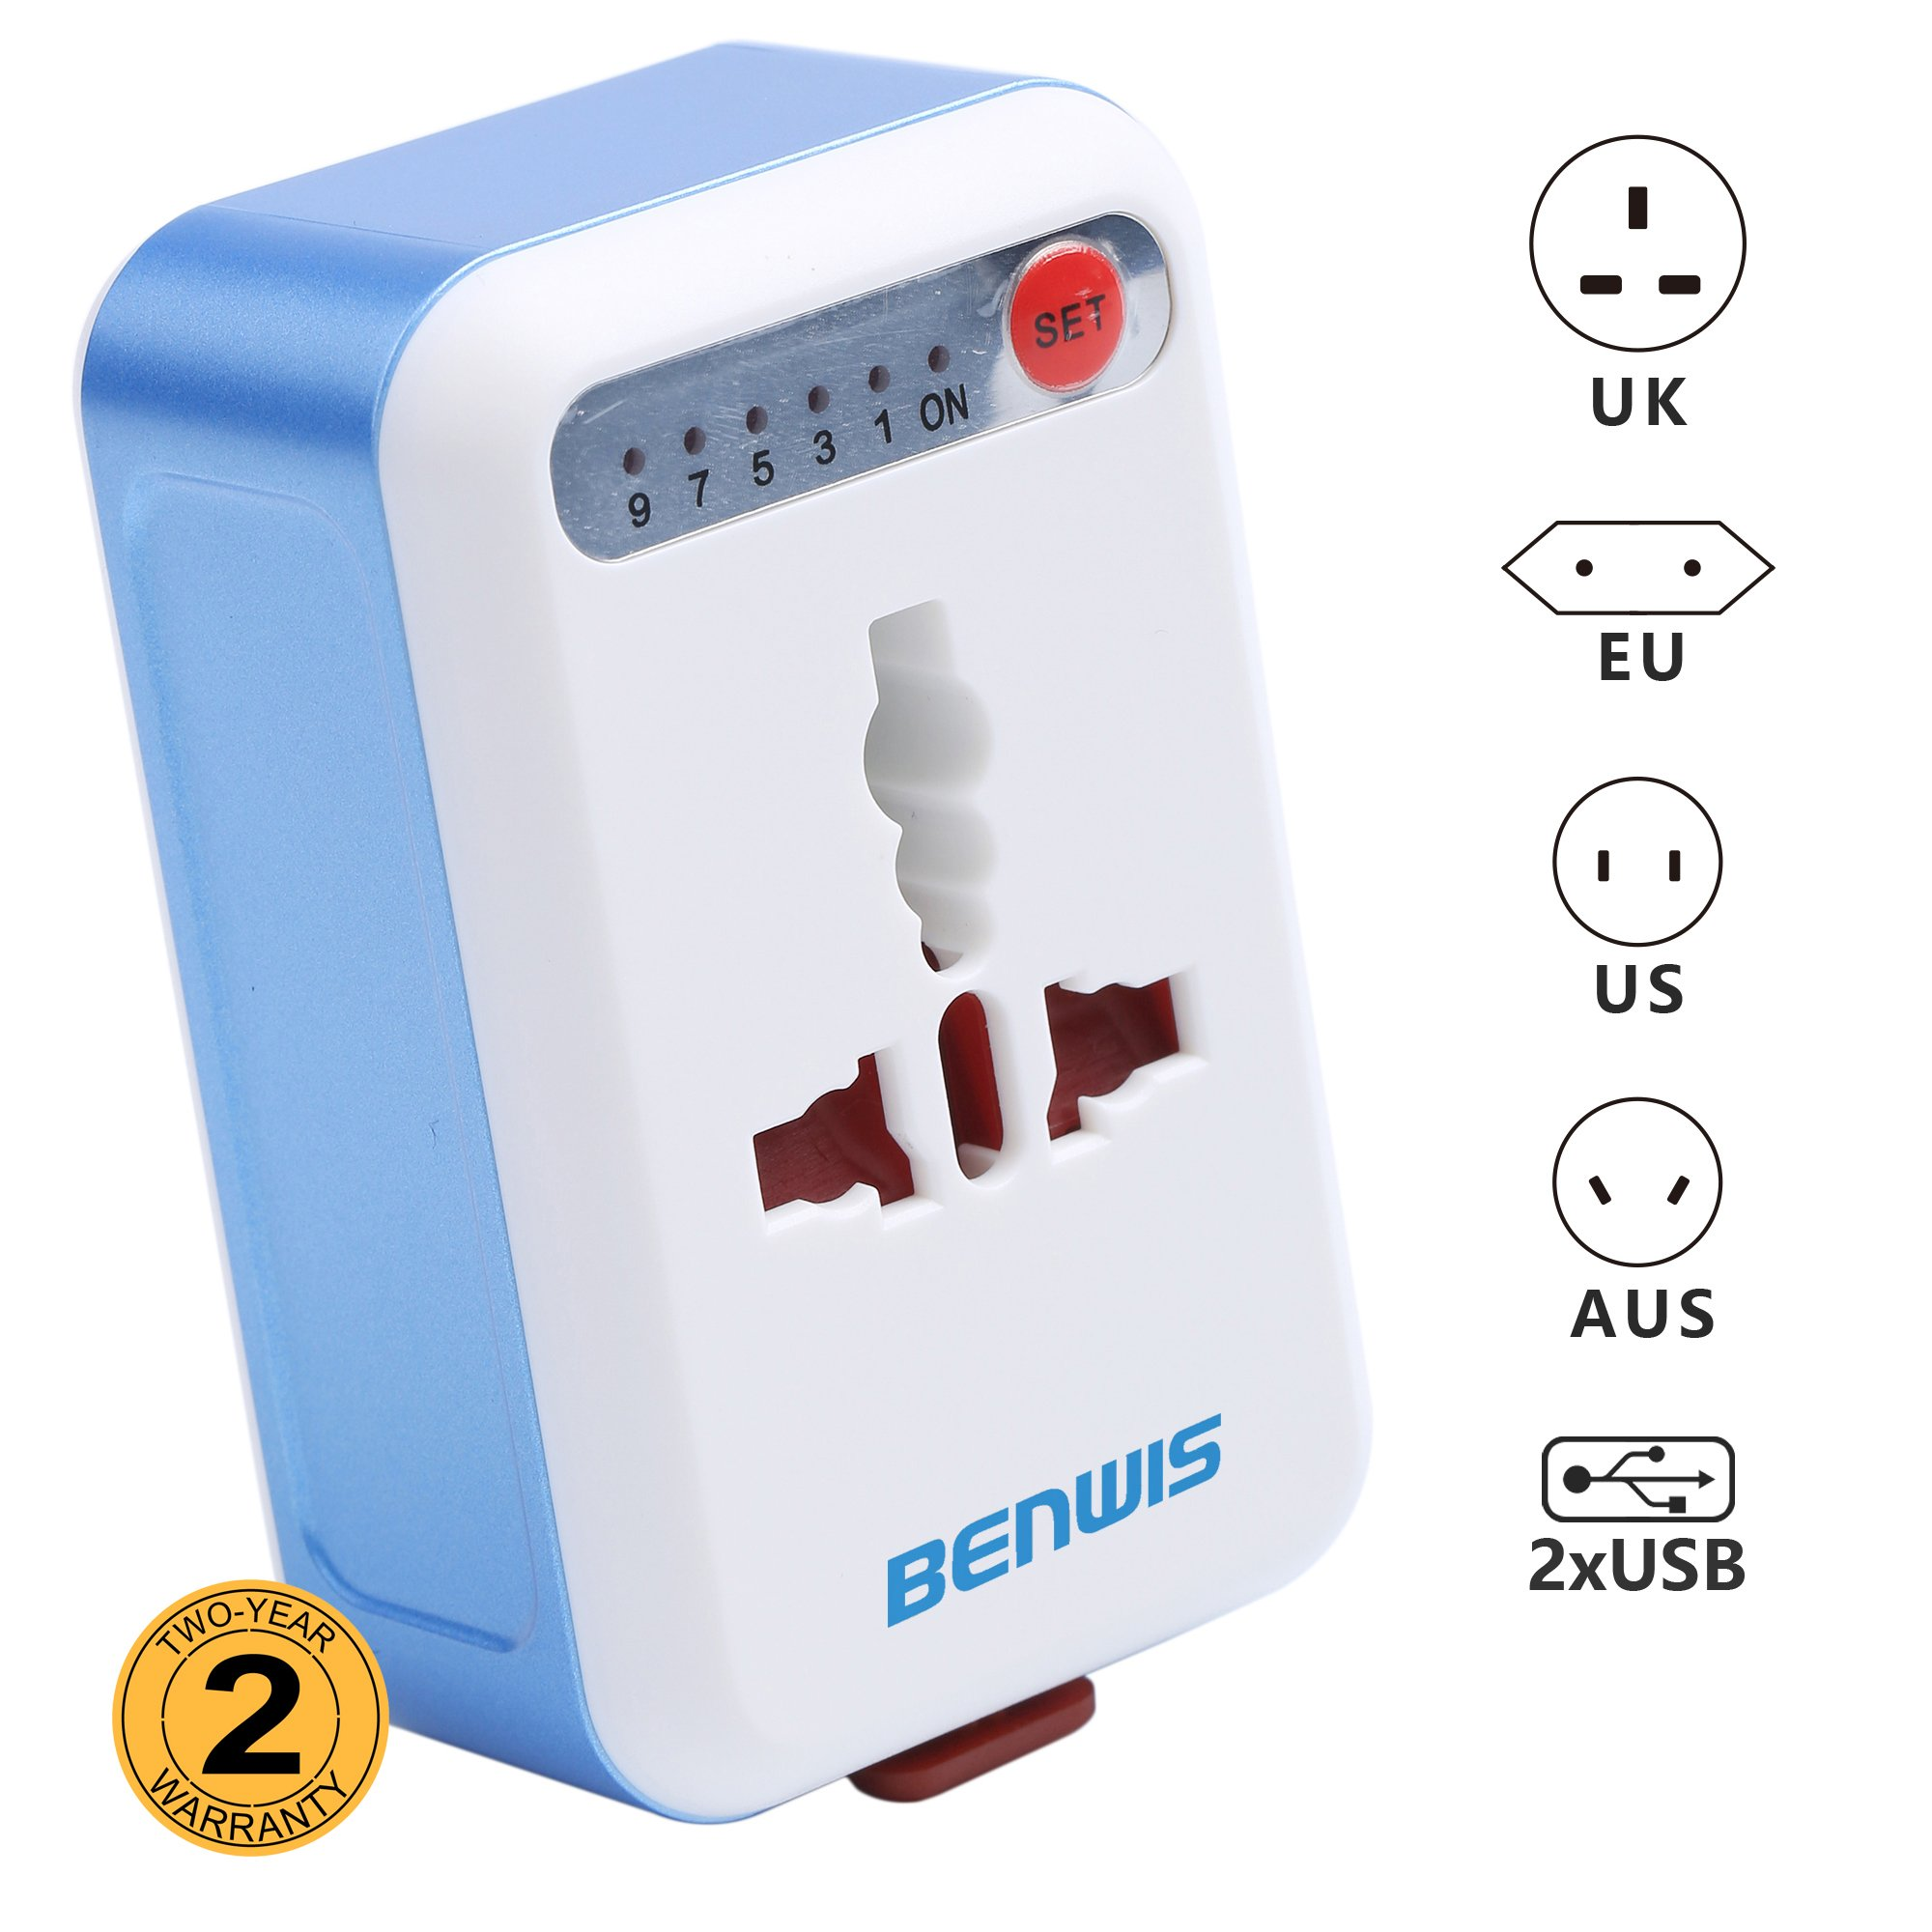 BENWIS Travel Adapter With 2 USB Ports, All In One USA UK European Australian Plug Converter for Travel Wall Charger (Sky Blue)